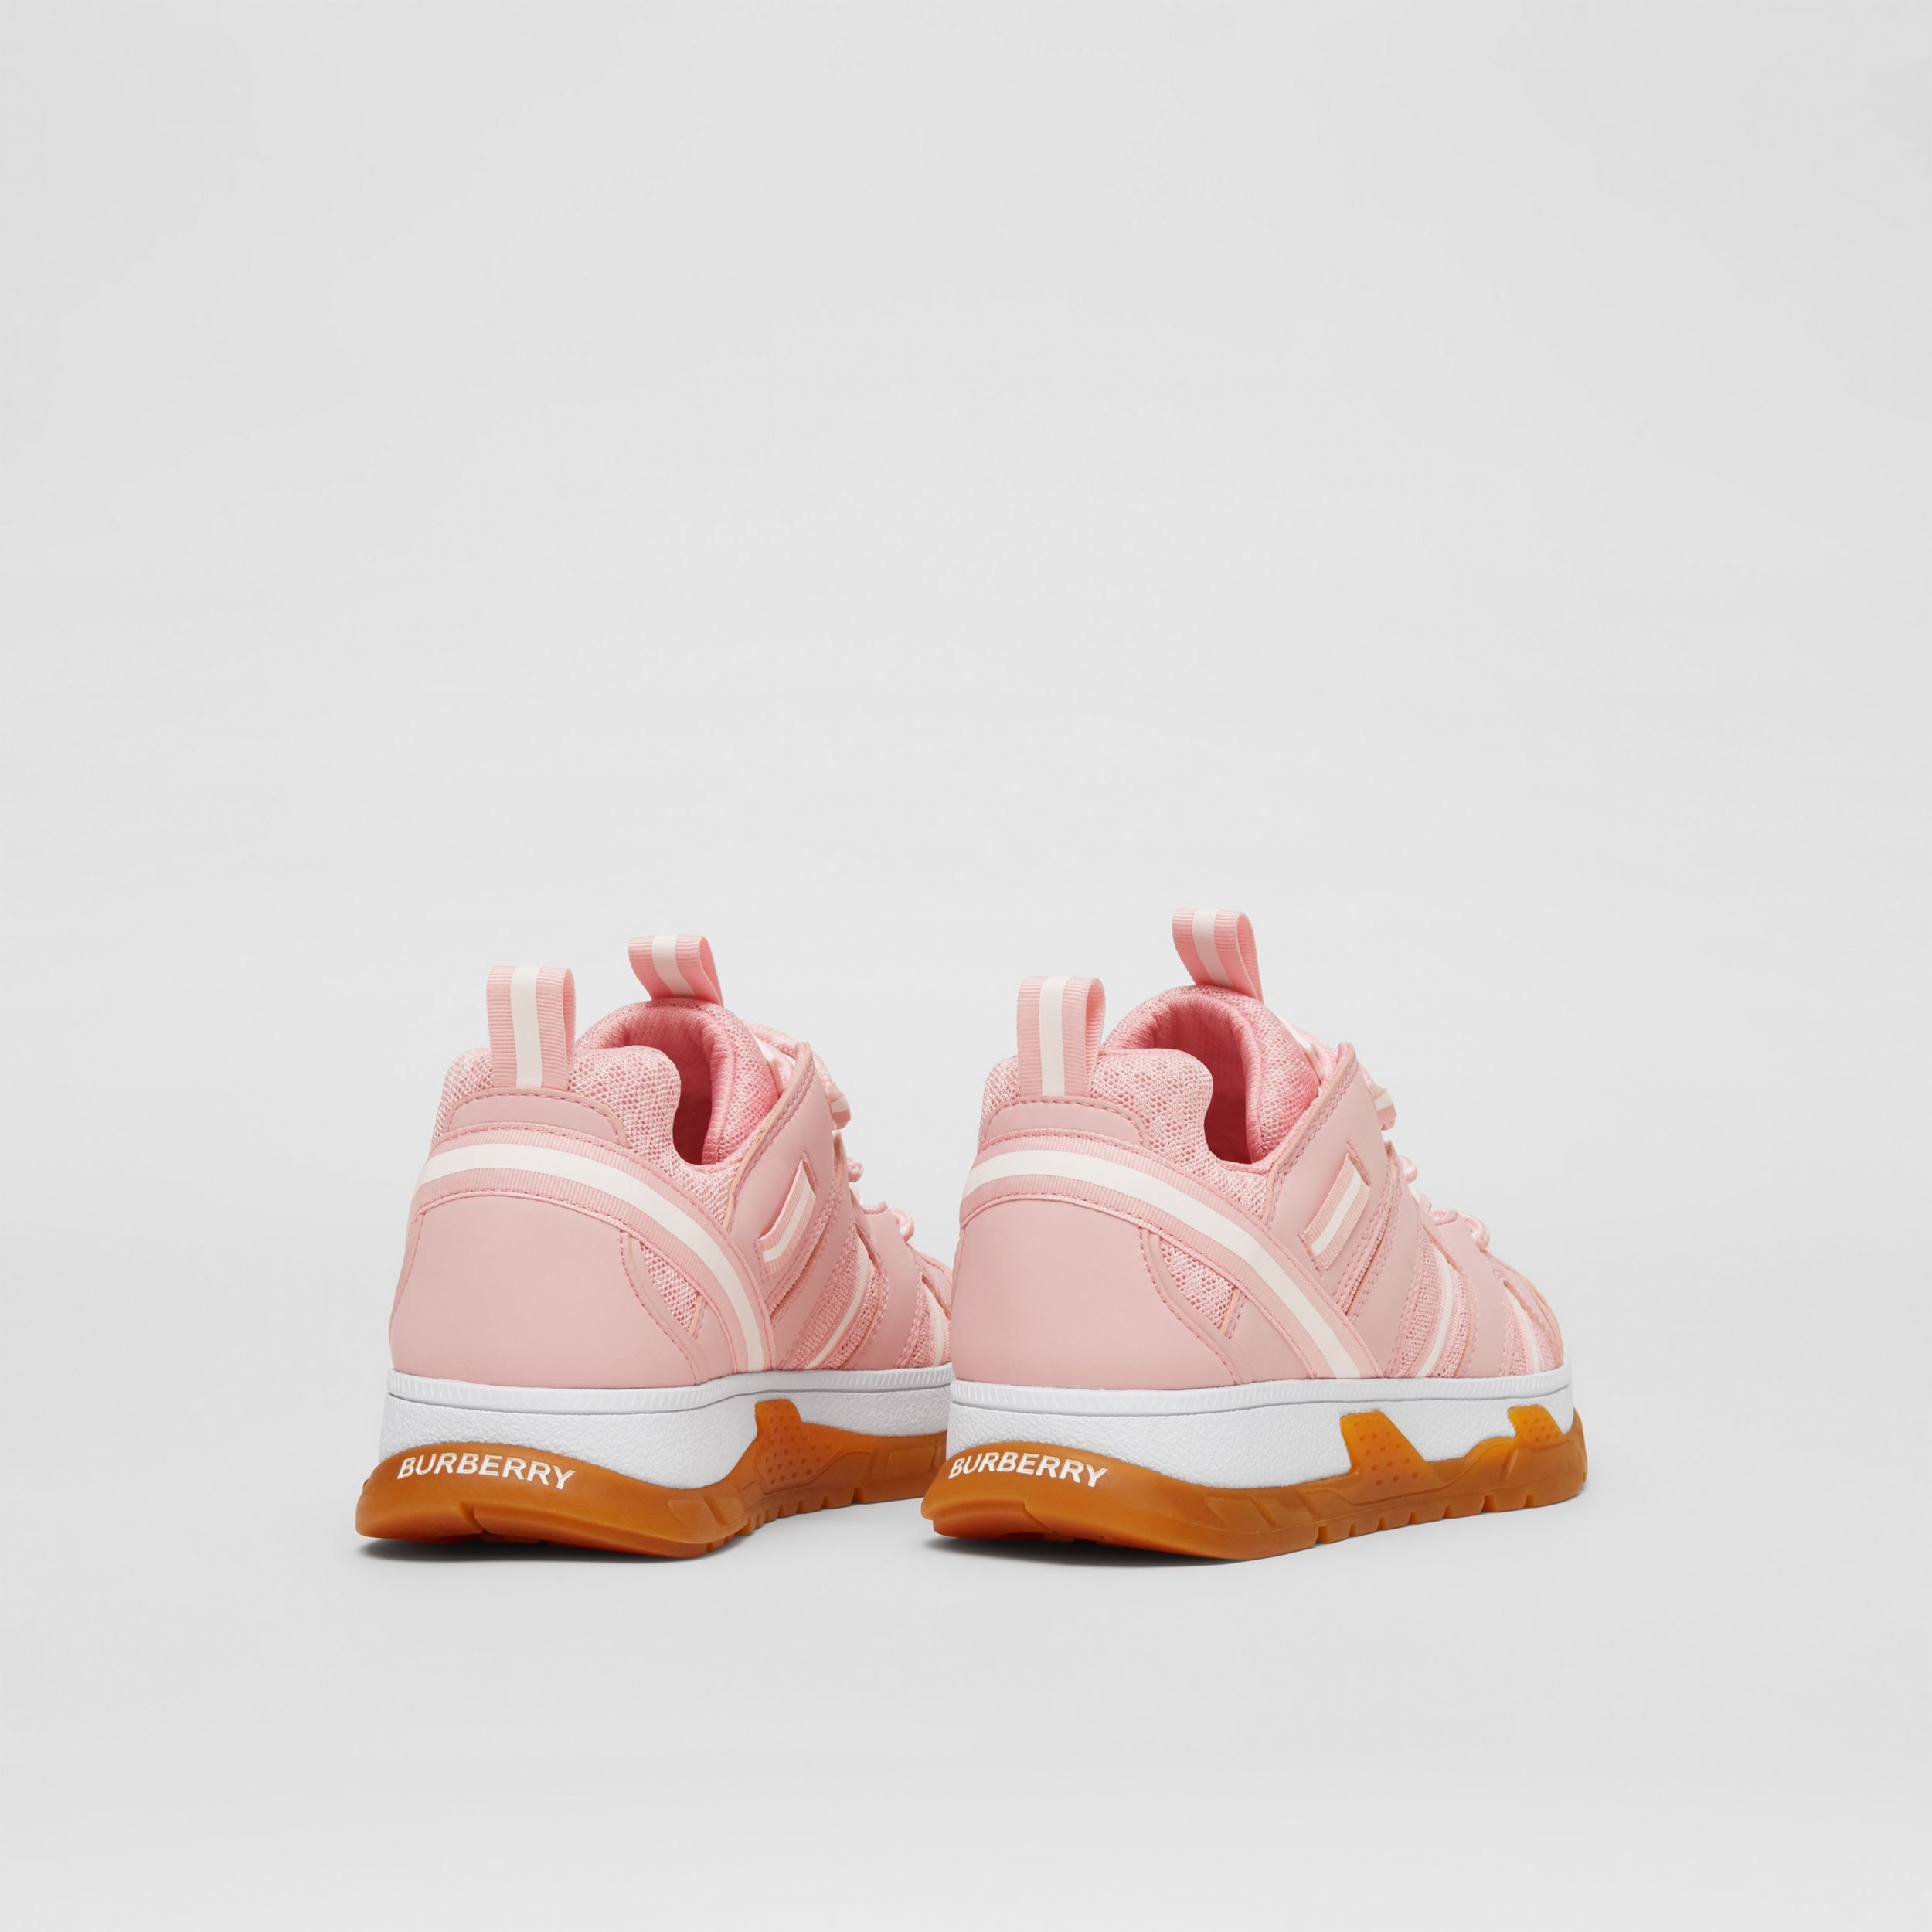 Nylon and Mesh Union Sneakers in Candy Pink - Children | Burberry - 3